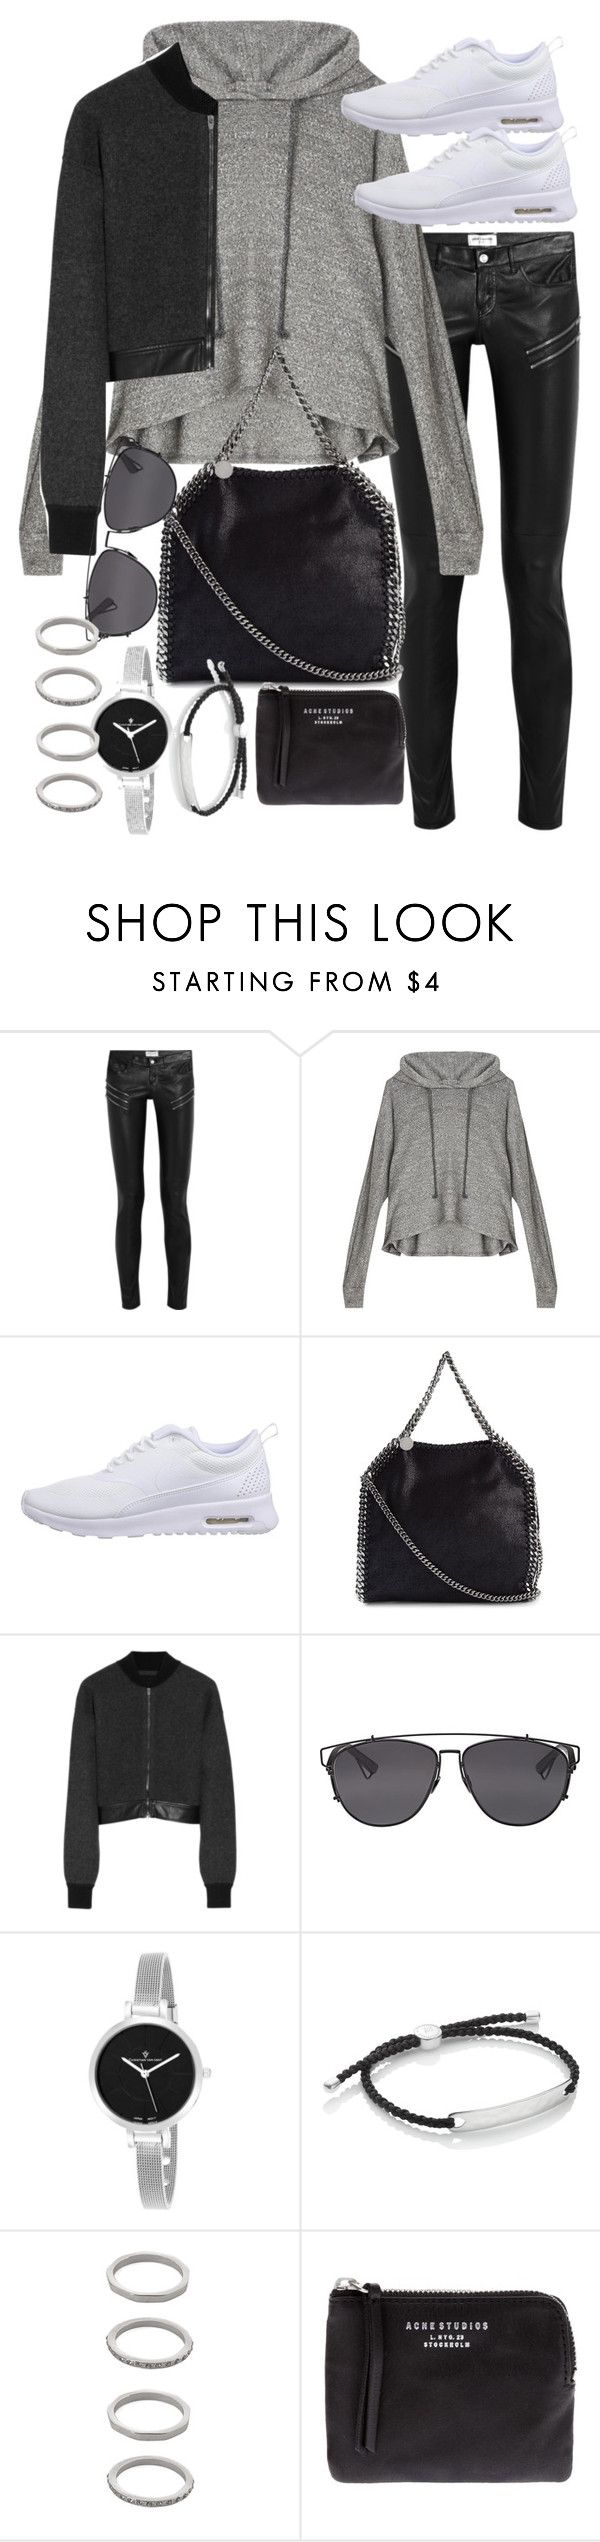 """Untitled #18910"" by florencia95 ❤ liked on Polyvore featuring Yves Saint Laurent, LnA, NIKE, STELLA McCARTNEY, Alexander Wang, Christian Dior, Christian Van Sant, Monica Vinader, Forever 21 and Acne Studios"